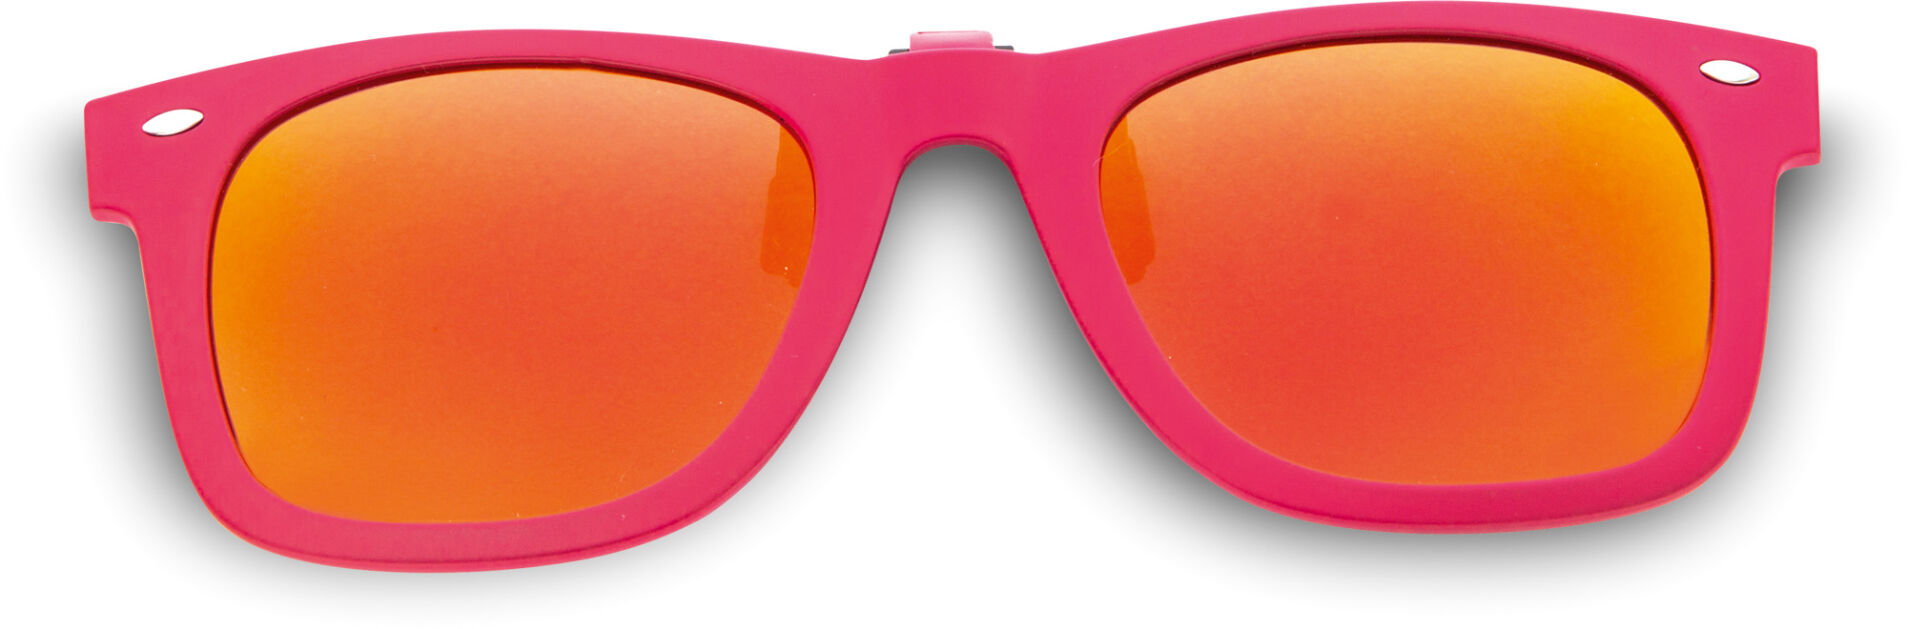 WayCool Jr. Flip-Ups Pink/Red Mirror Polarized